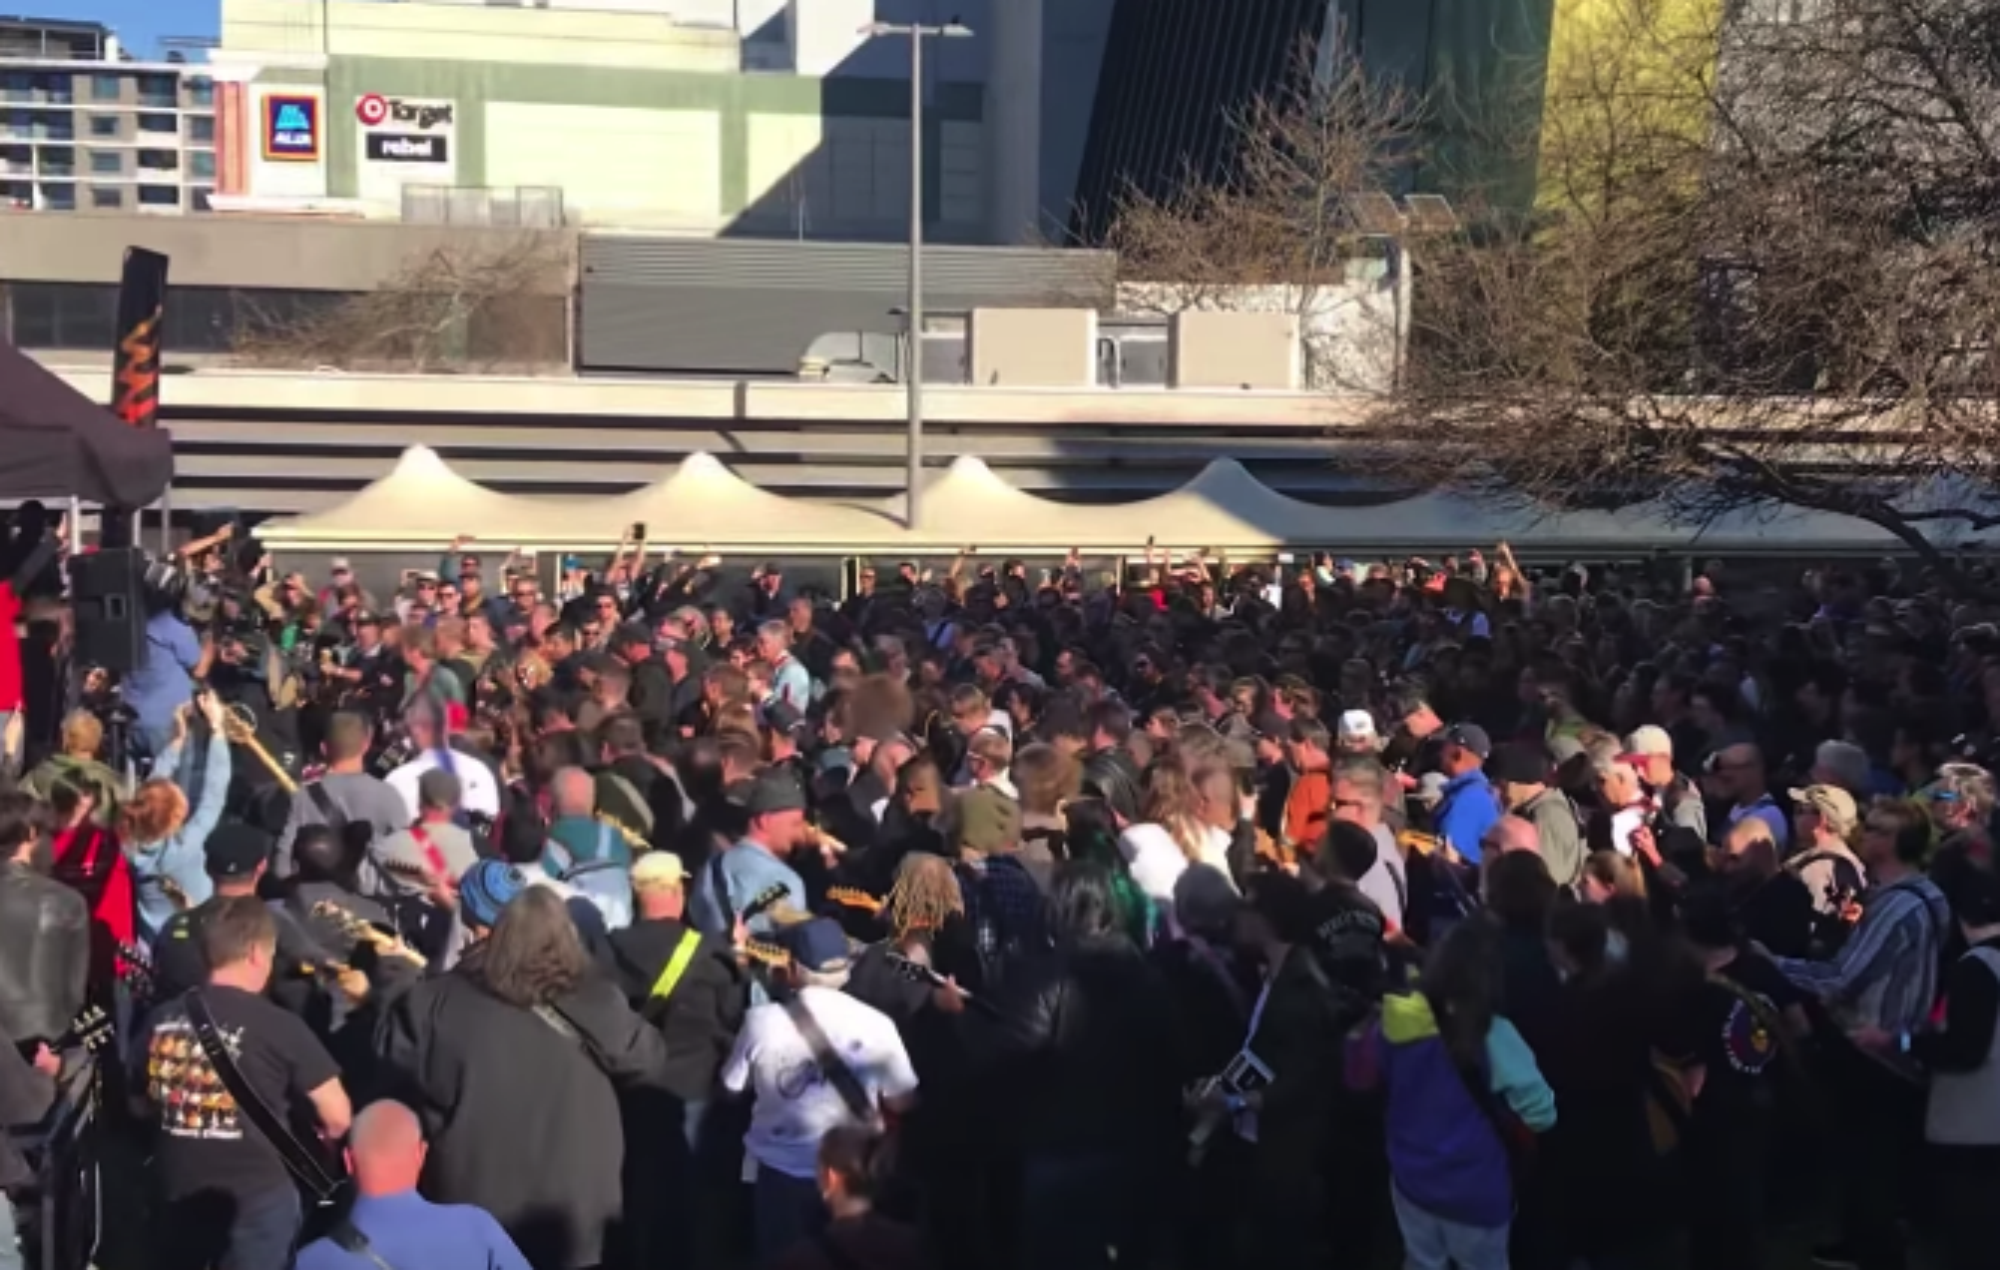 Let there be rock! 450 guitarists play AC/DC's 'Highway to Hell' to break world record